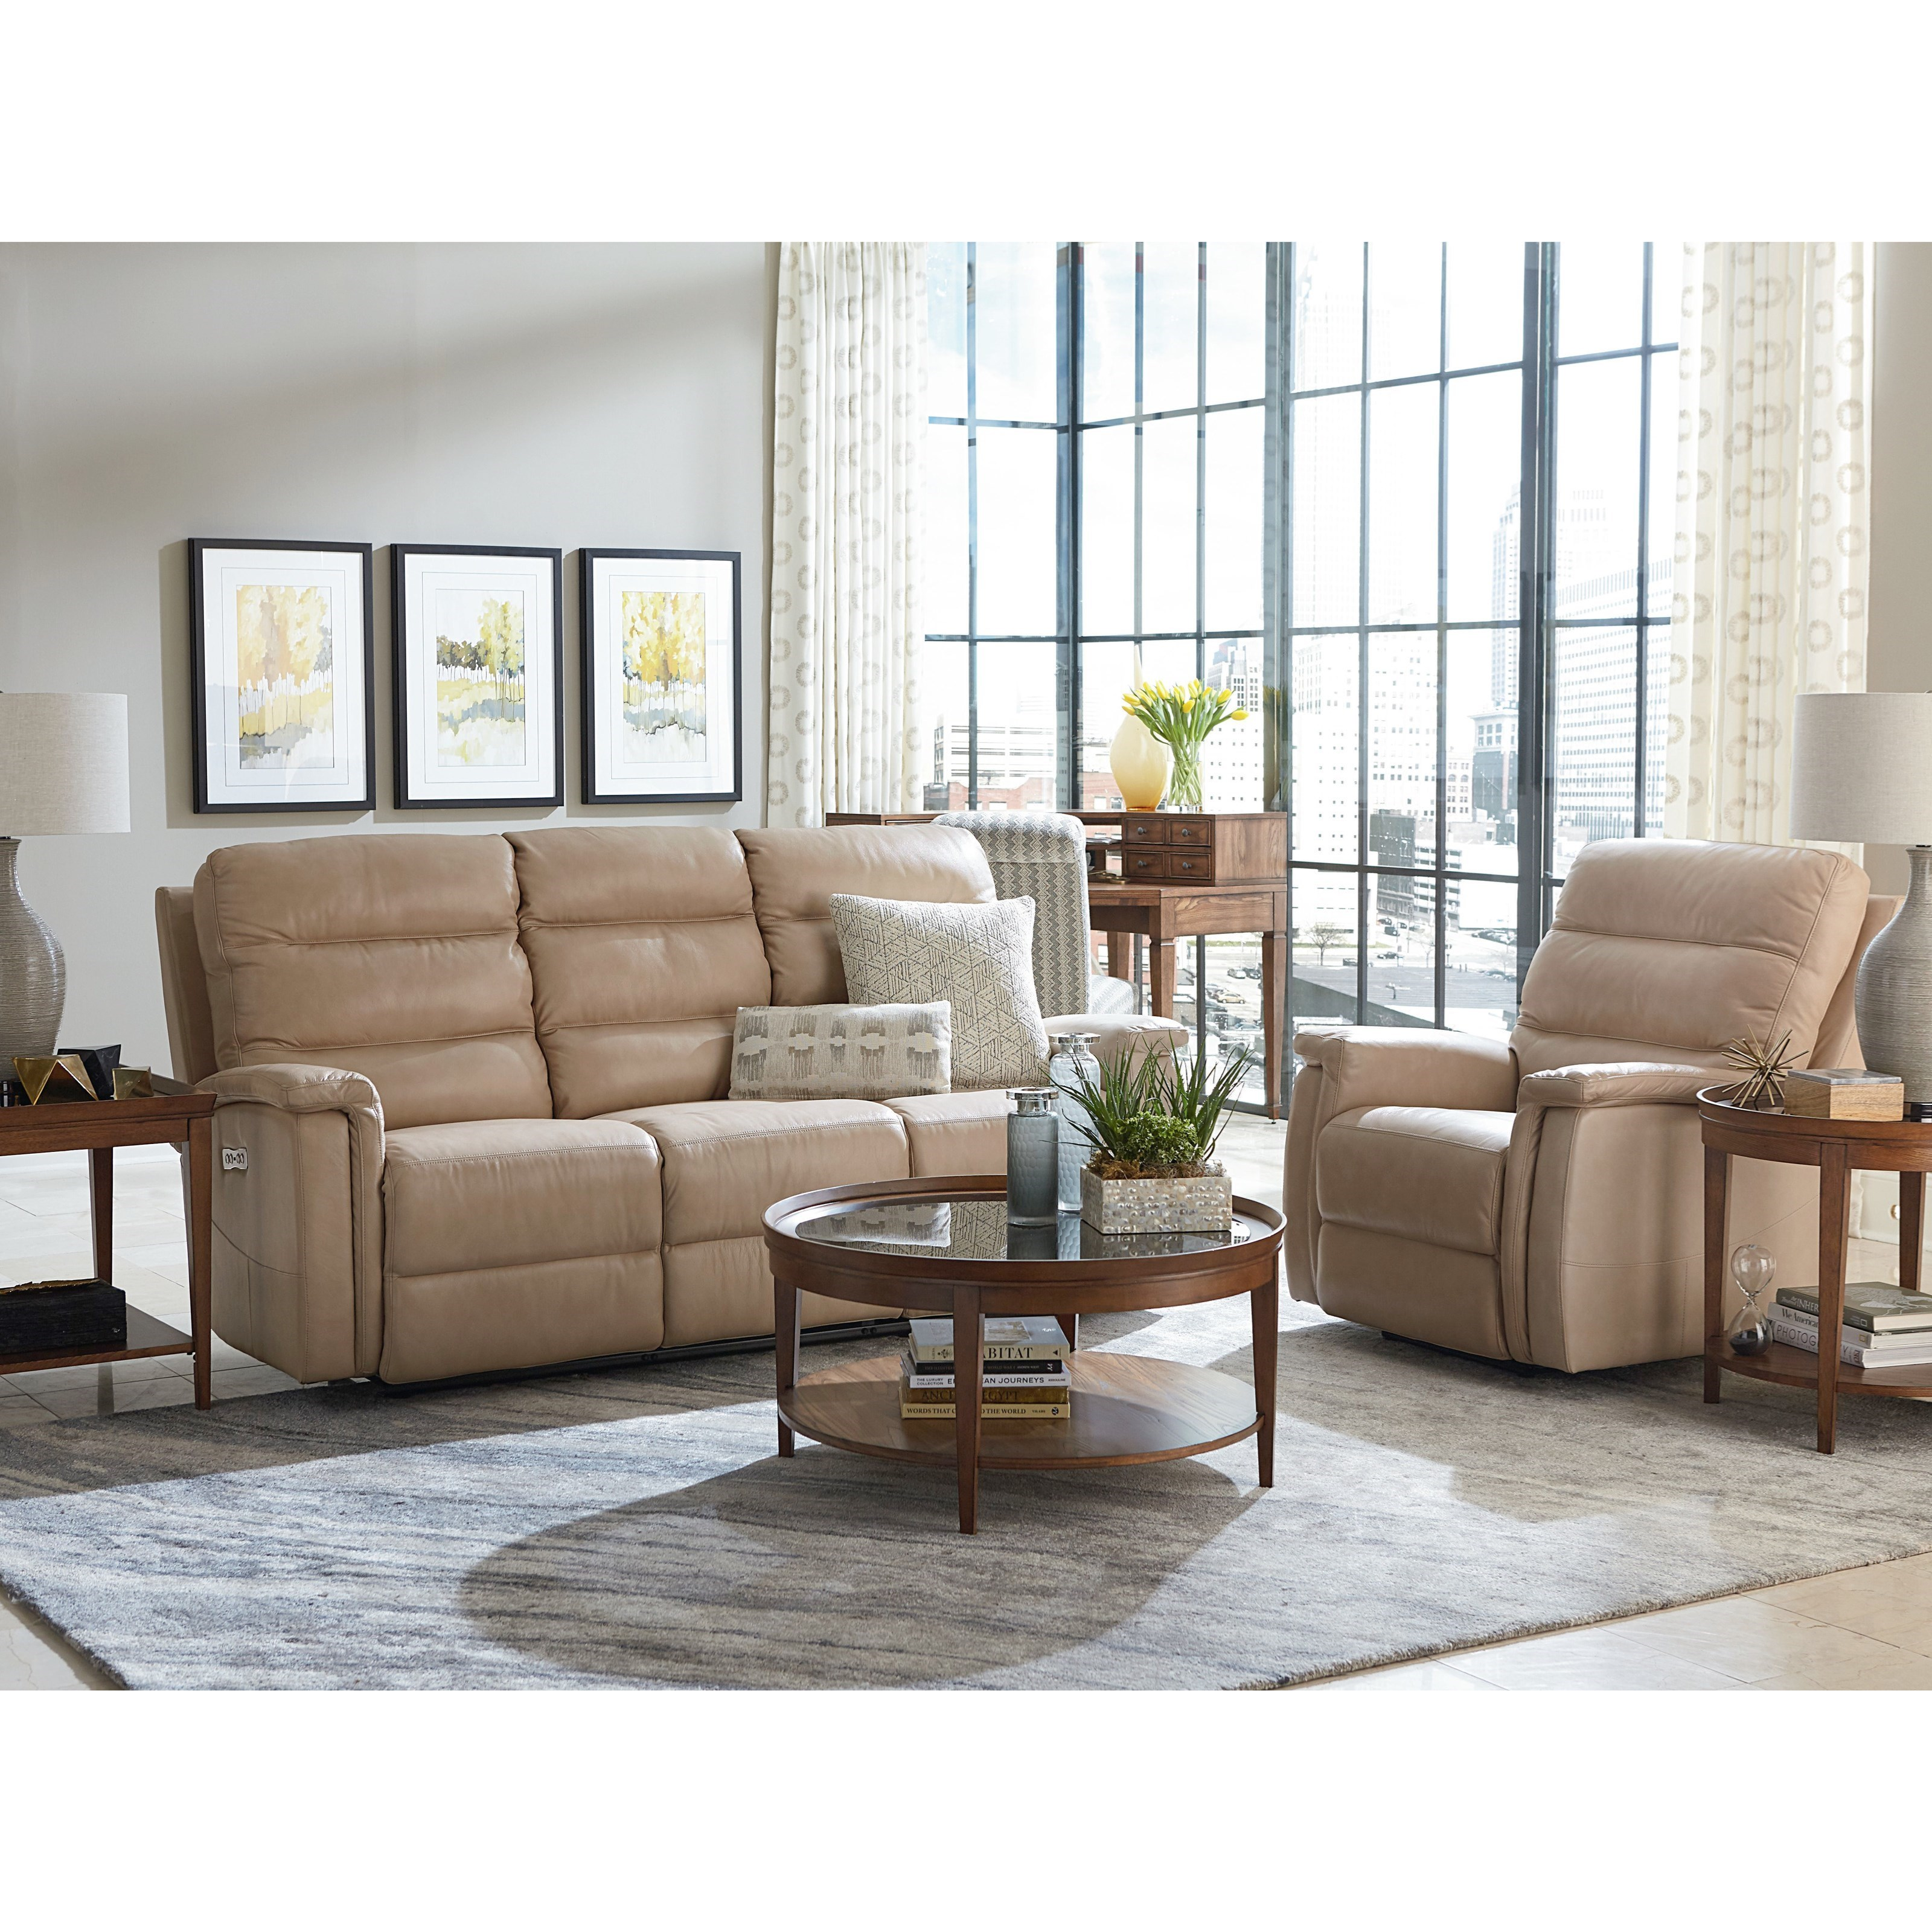 Regency - Club Level Reclining Living Room Group by Bassett at Esprit Decor Home Furnishings